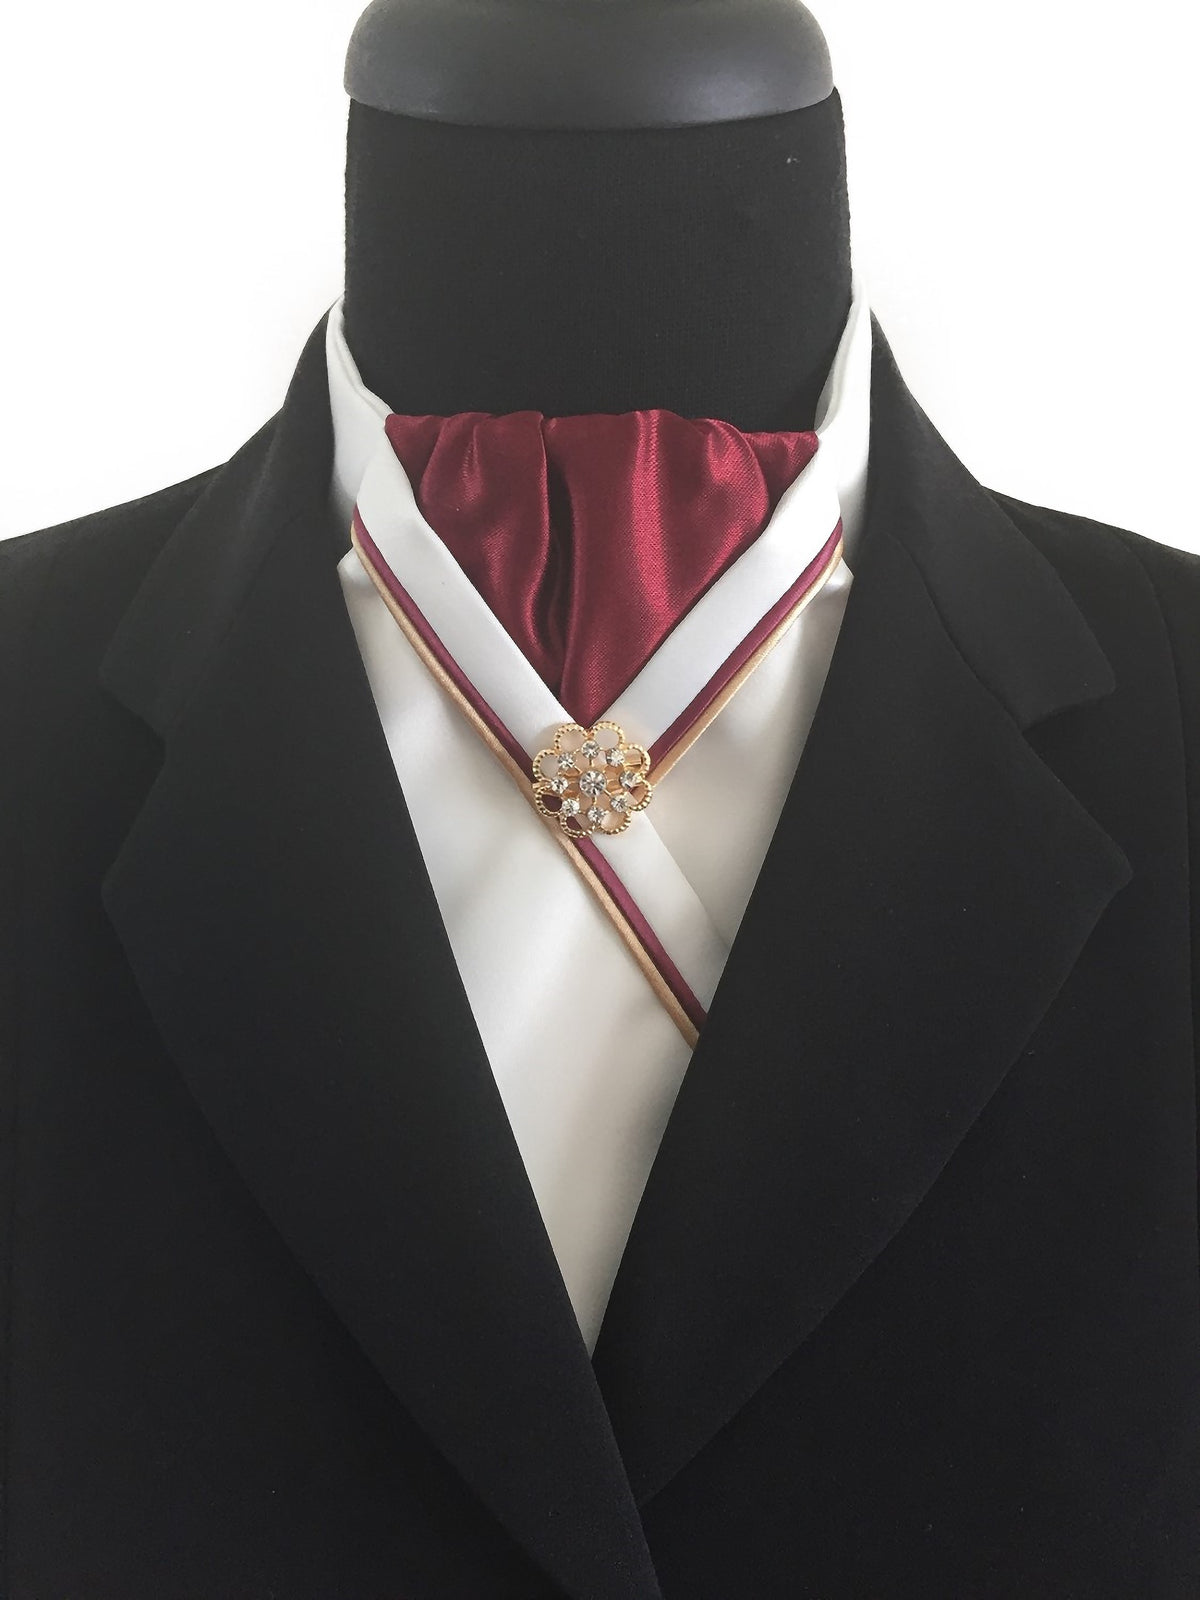 Cream Stock Tie with Burgundy Center and Piping